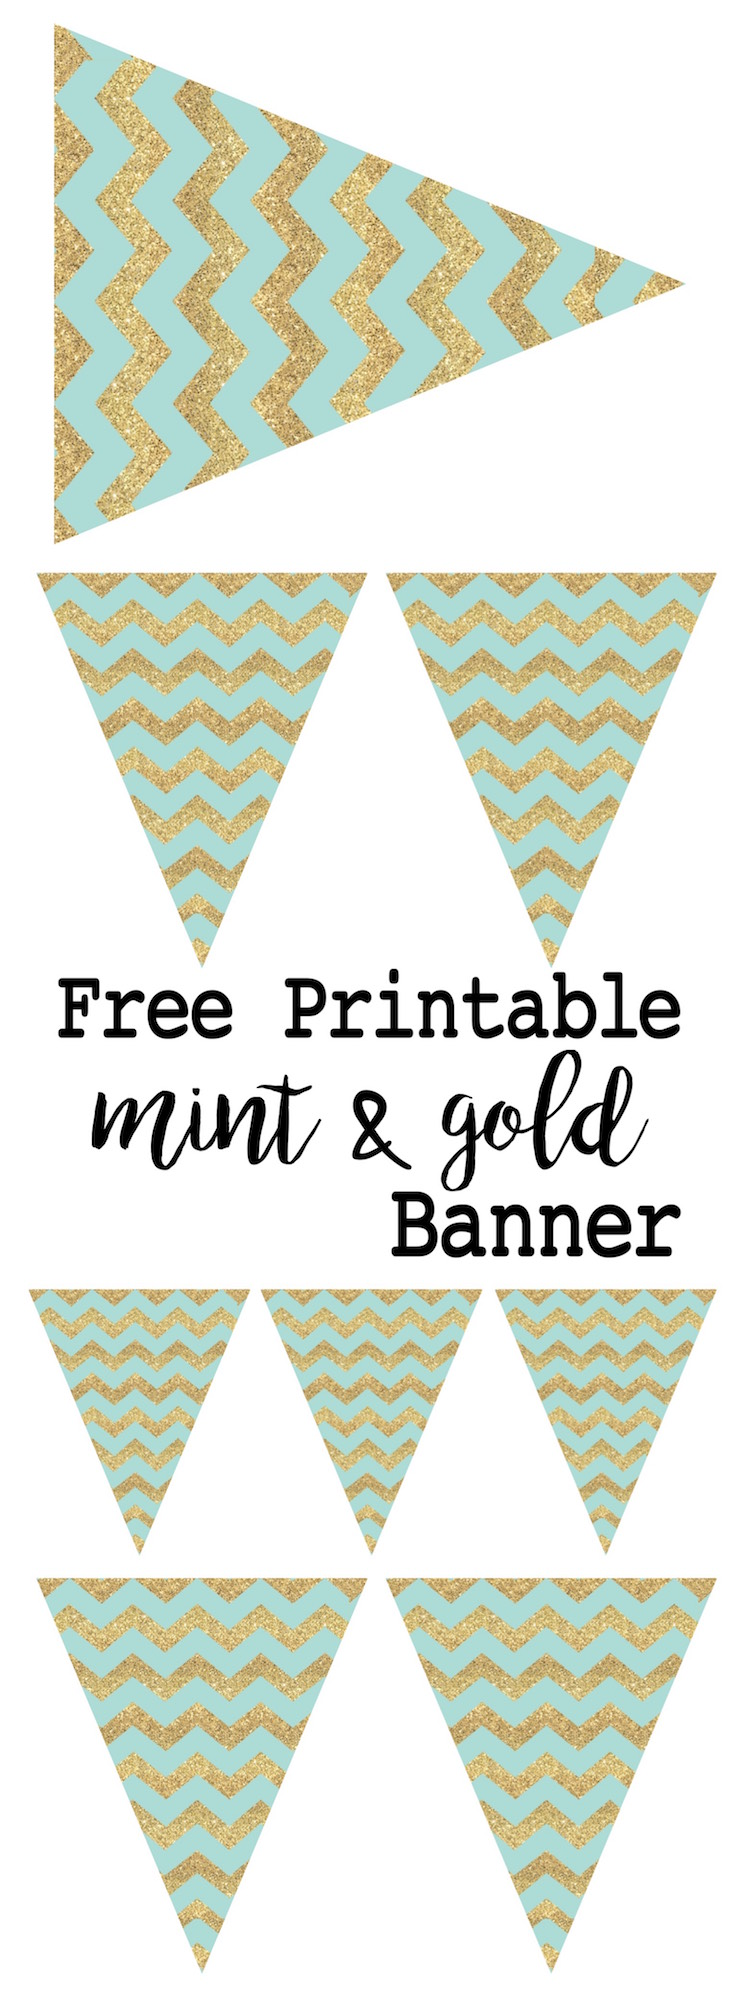 Mint and gold banner free printable. Print this easy to make banner for a wedding, baby shower, birthday party, or just because it is adorable.